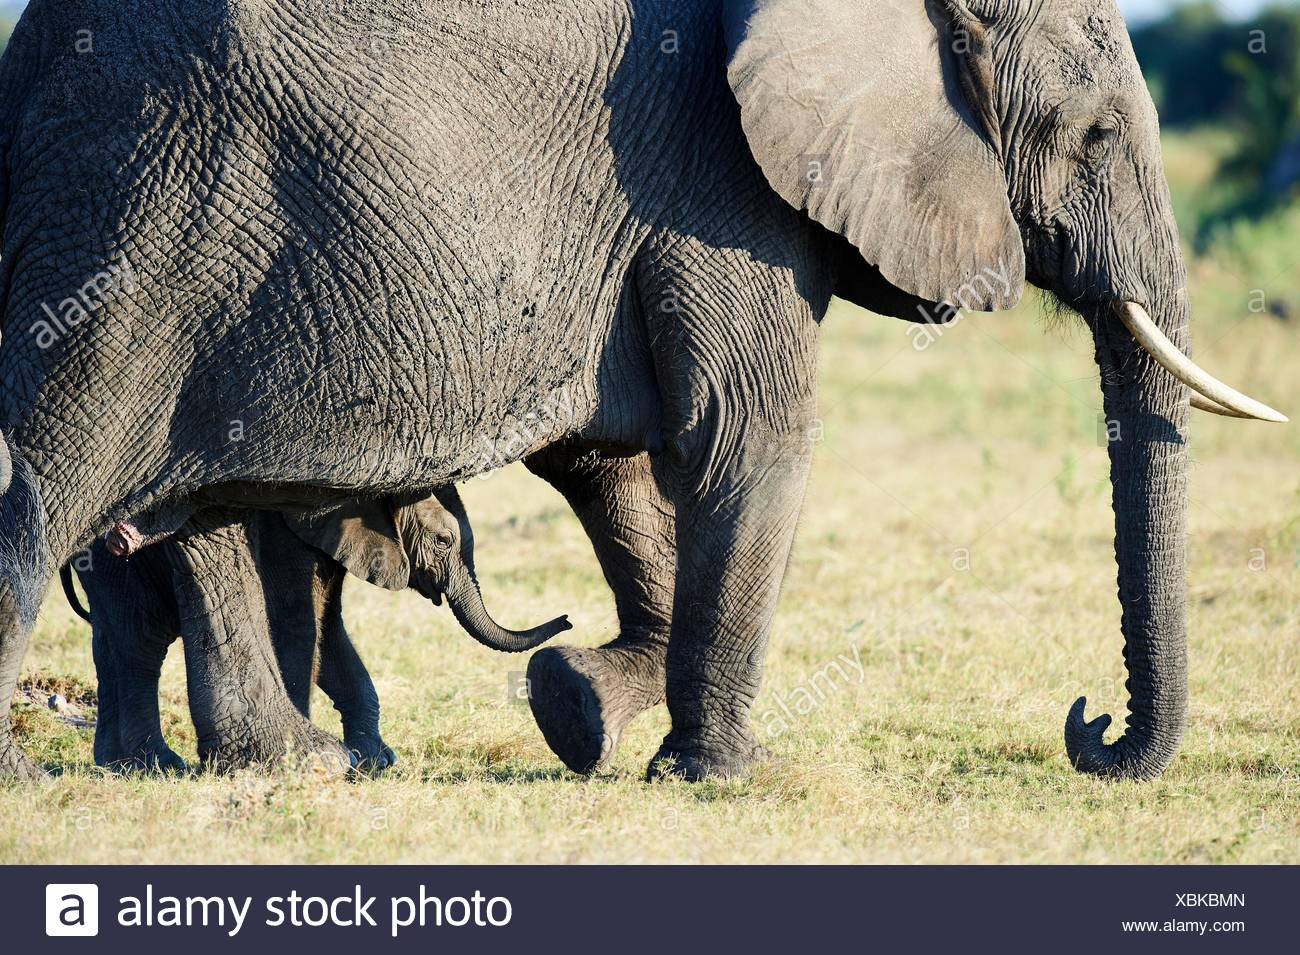 African elephant mother and young calf (Loxodonta africana), Duba Plains, Okavango Delta, Botswana, Southern Africa. - Stock Image